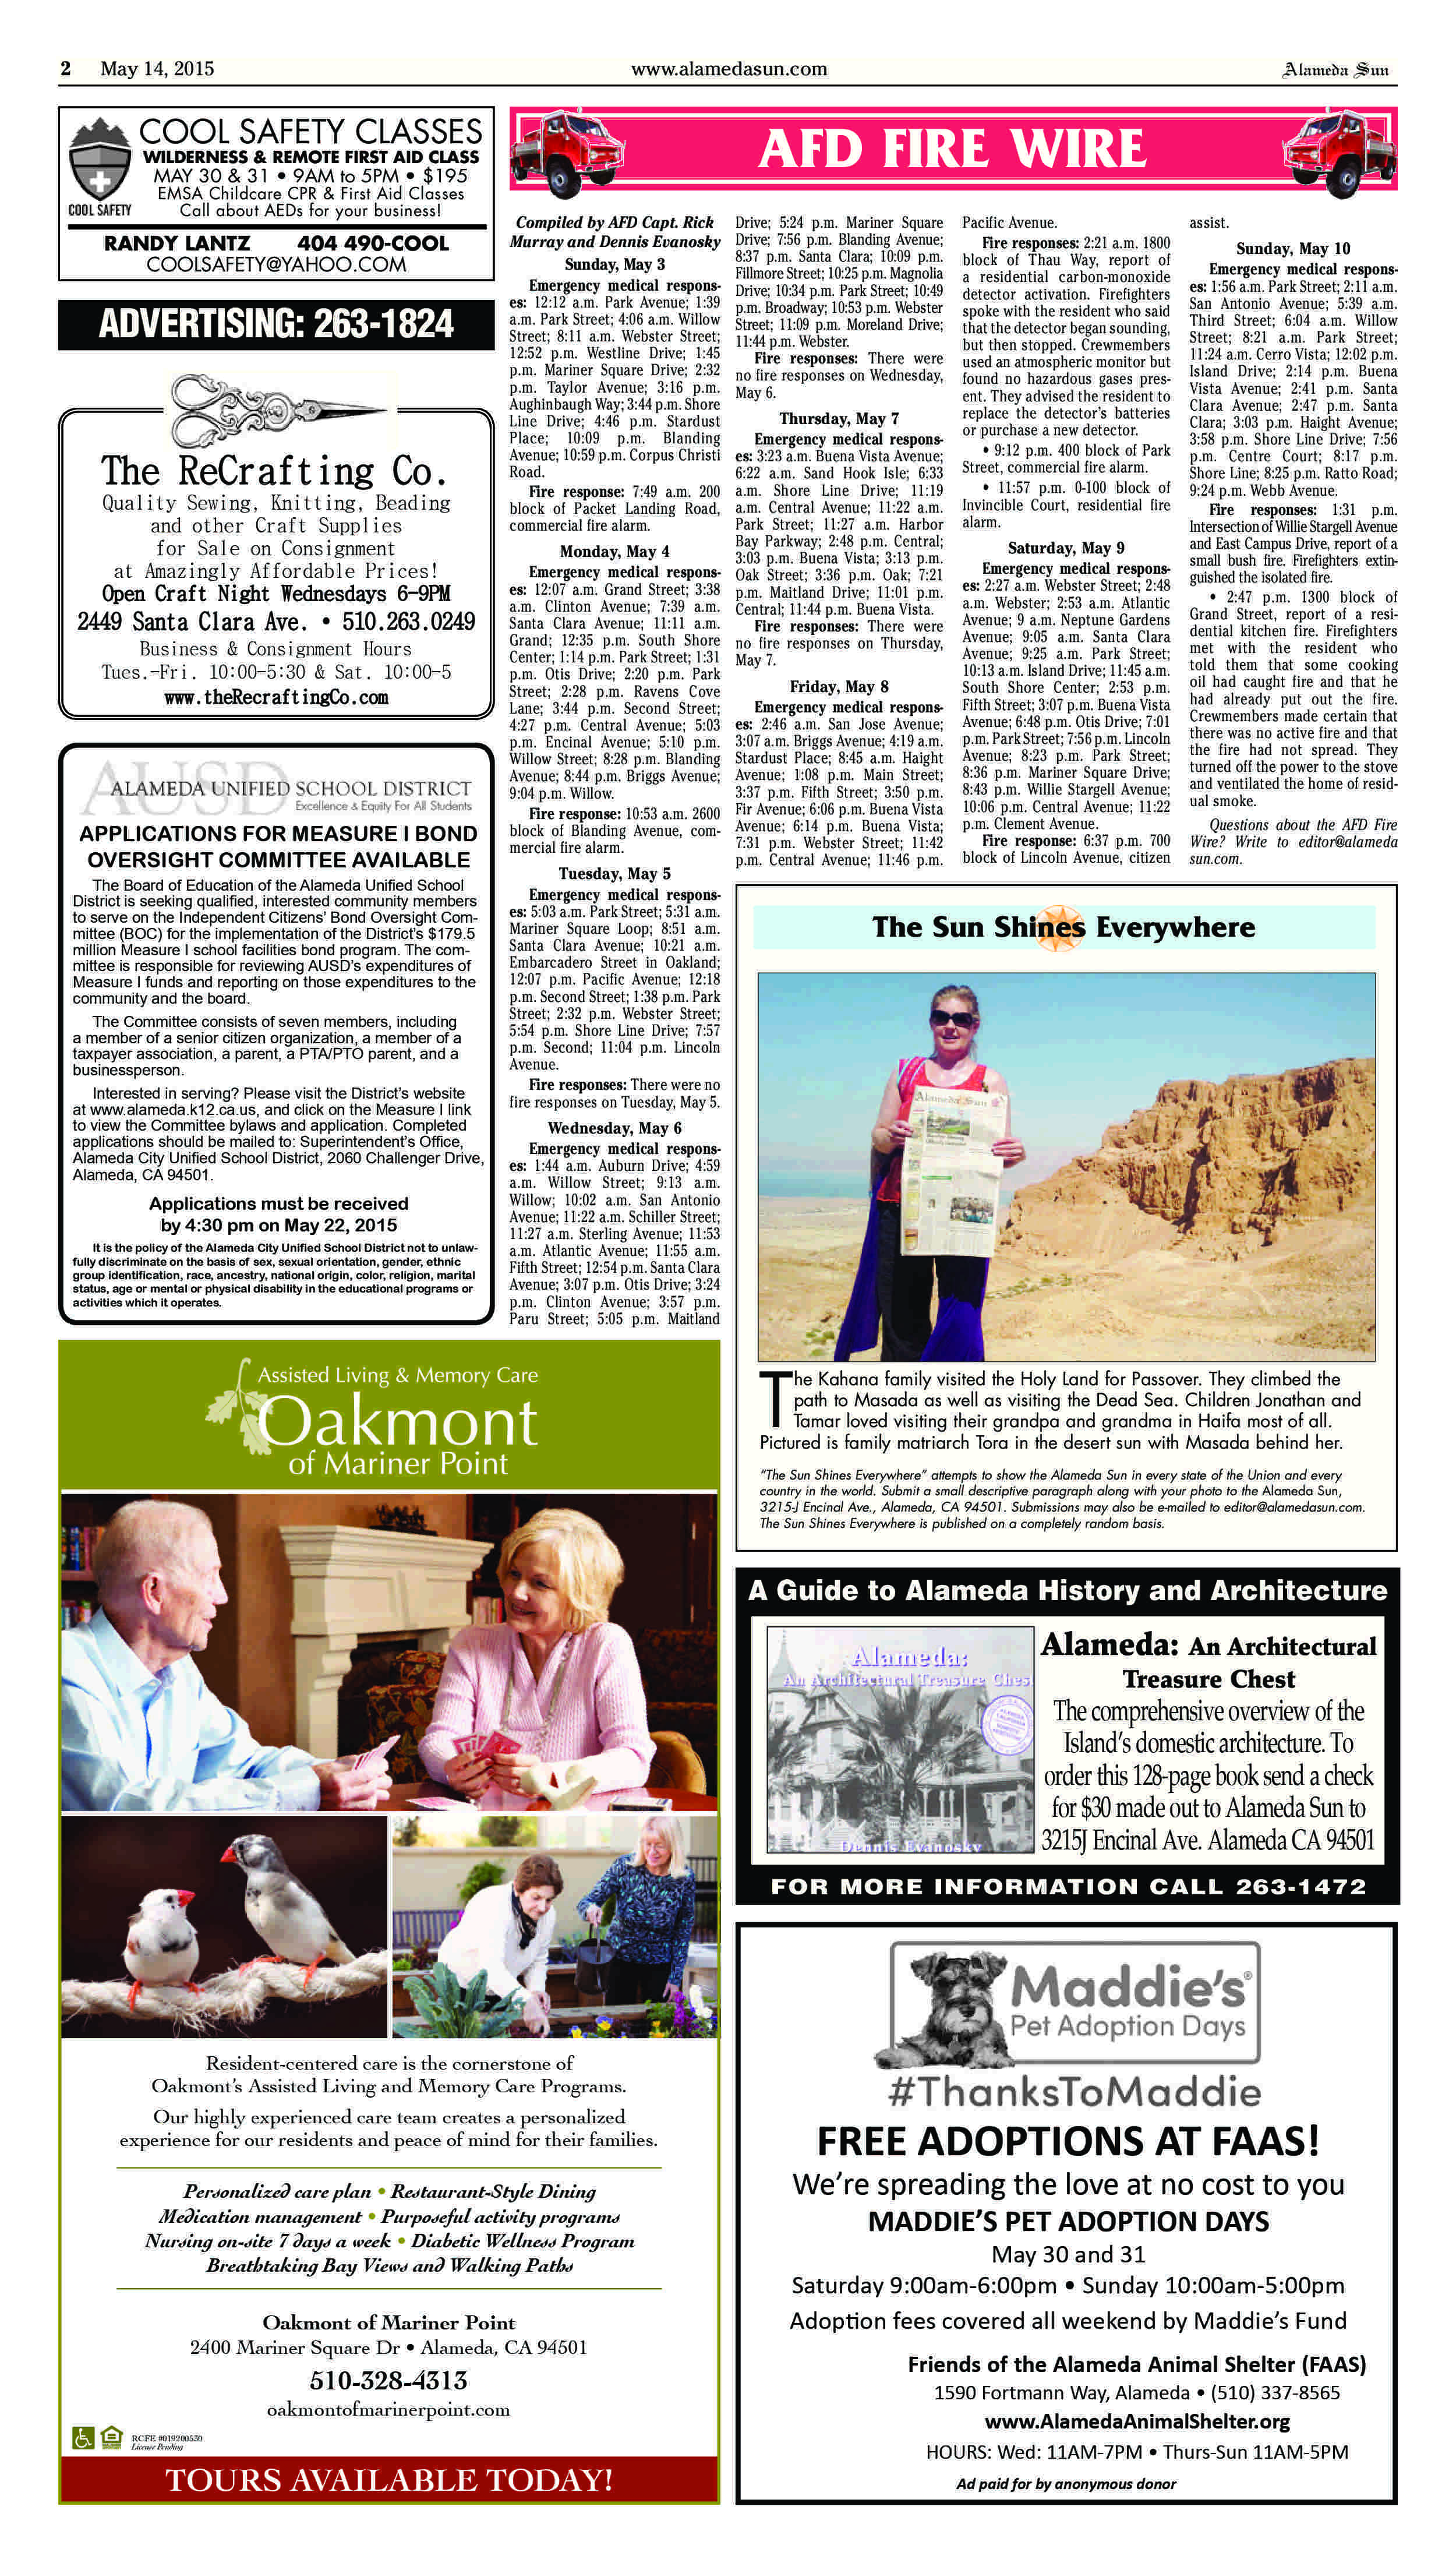 Free Talk Thursday May 14th In >> Print Edition For Thursday May 14 2015 Alameda Sun